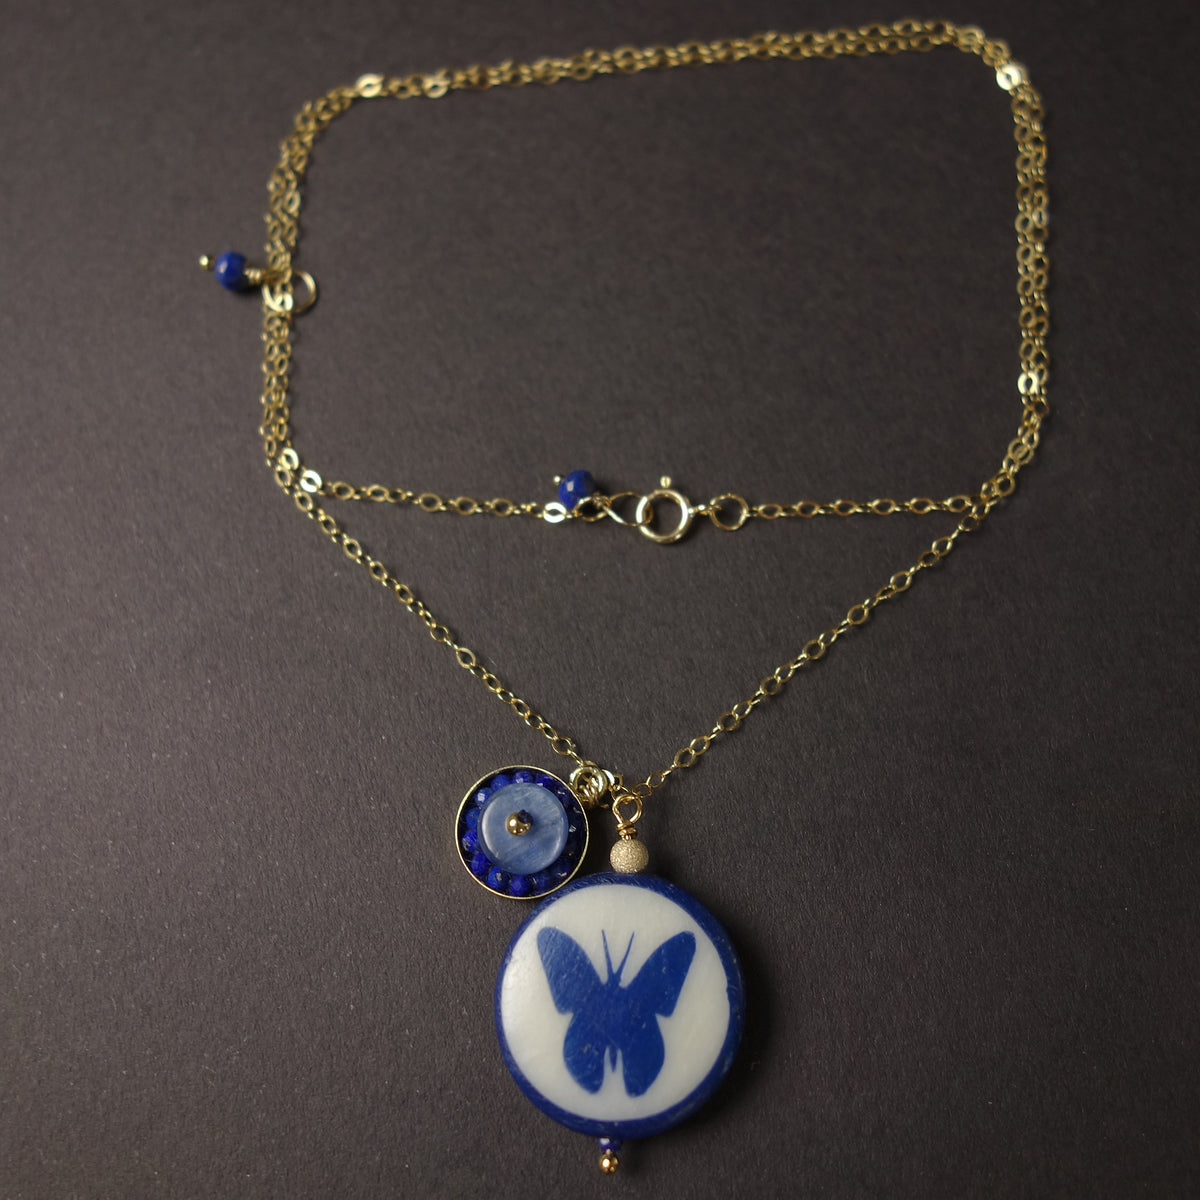 She Shows her true colors: butterfly/mosaic necklace